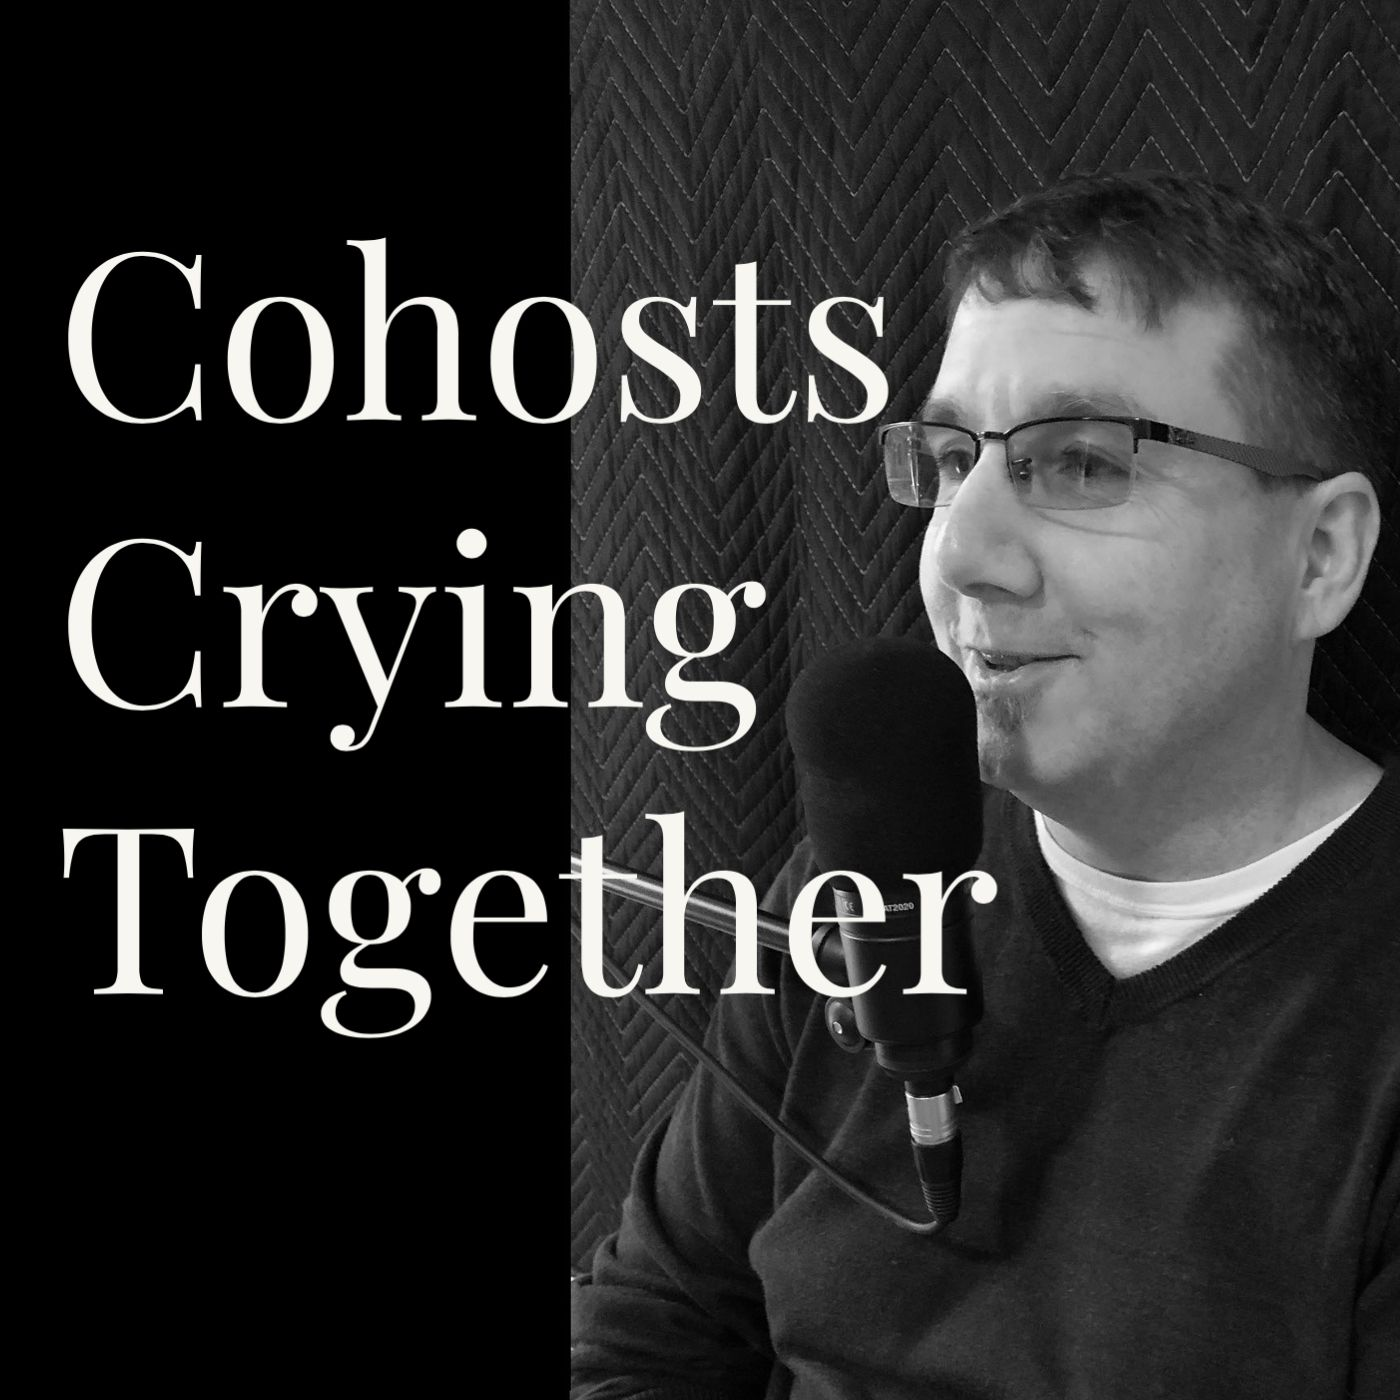 Cohosts Crying Together